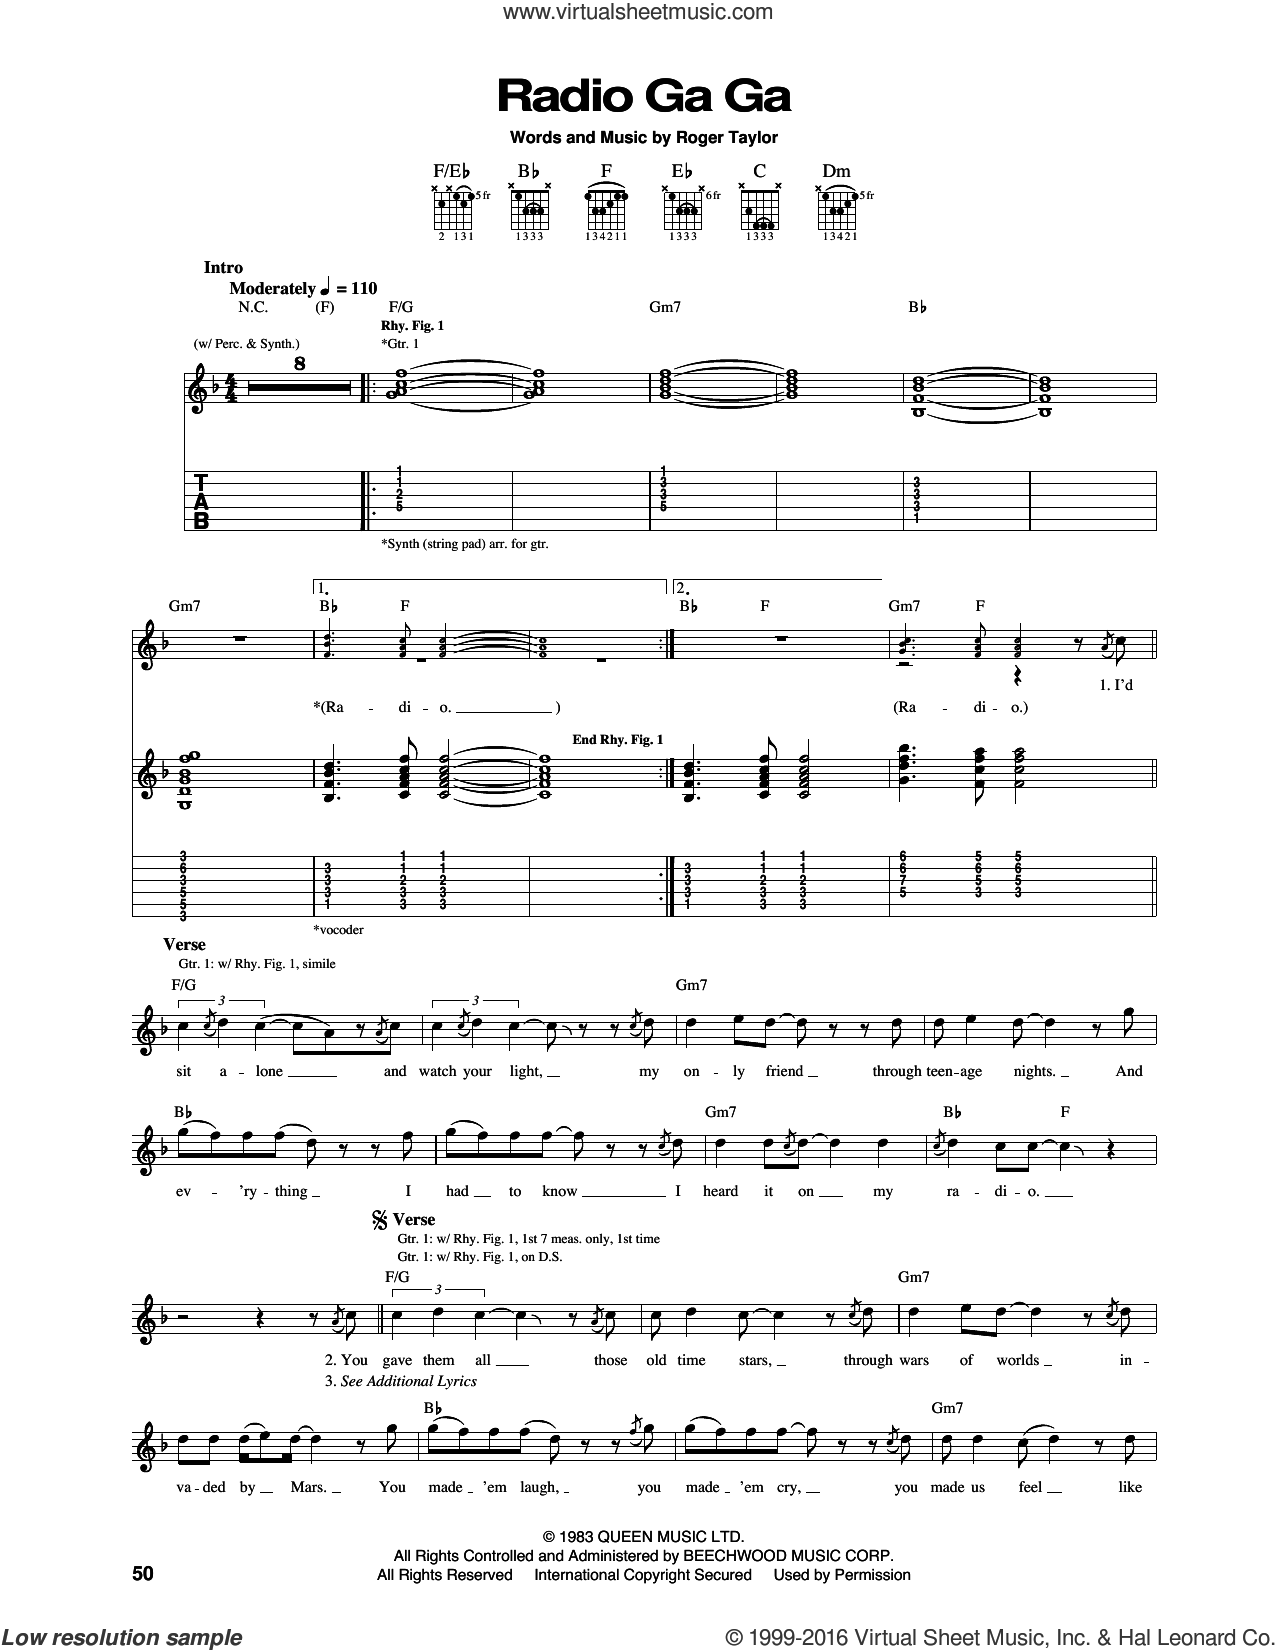 Radio Ga Ga sheet music for guitar (tablature) by Queen and Roger Taylor, intermediate skill level